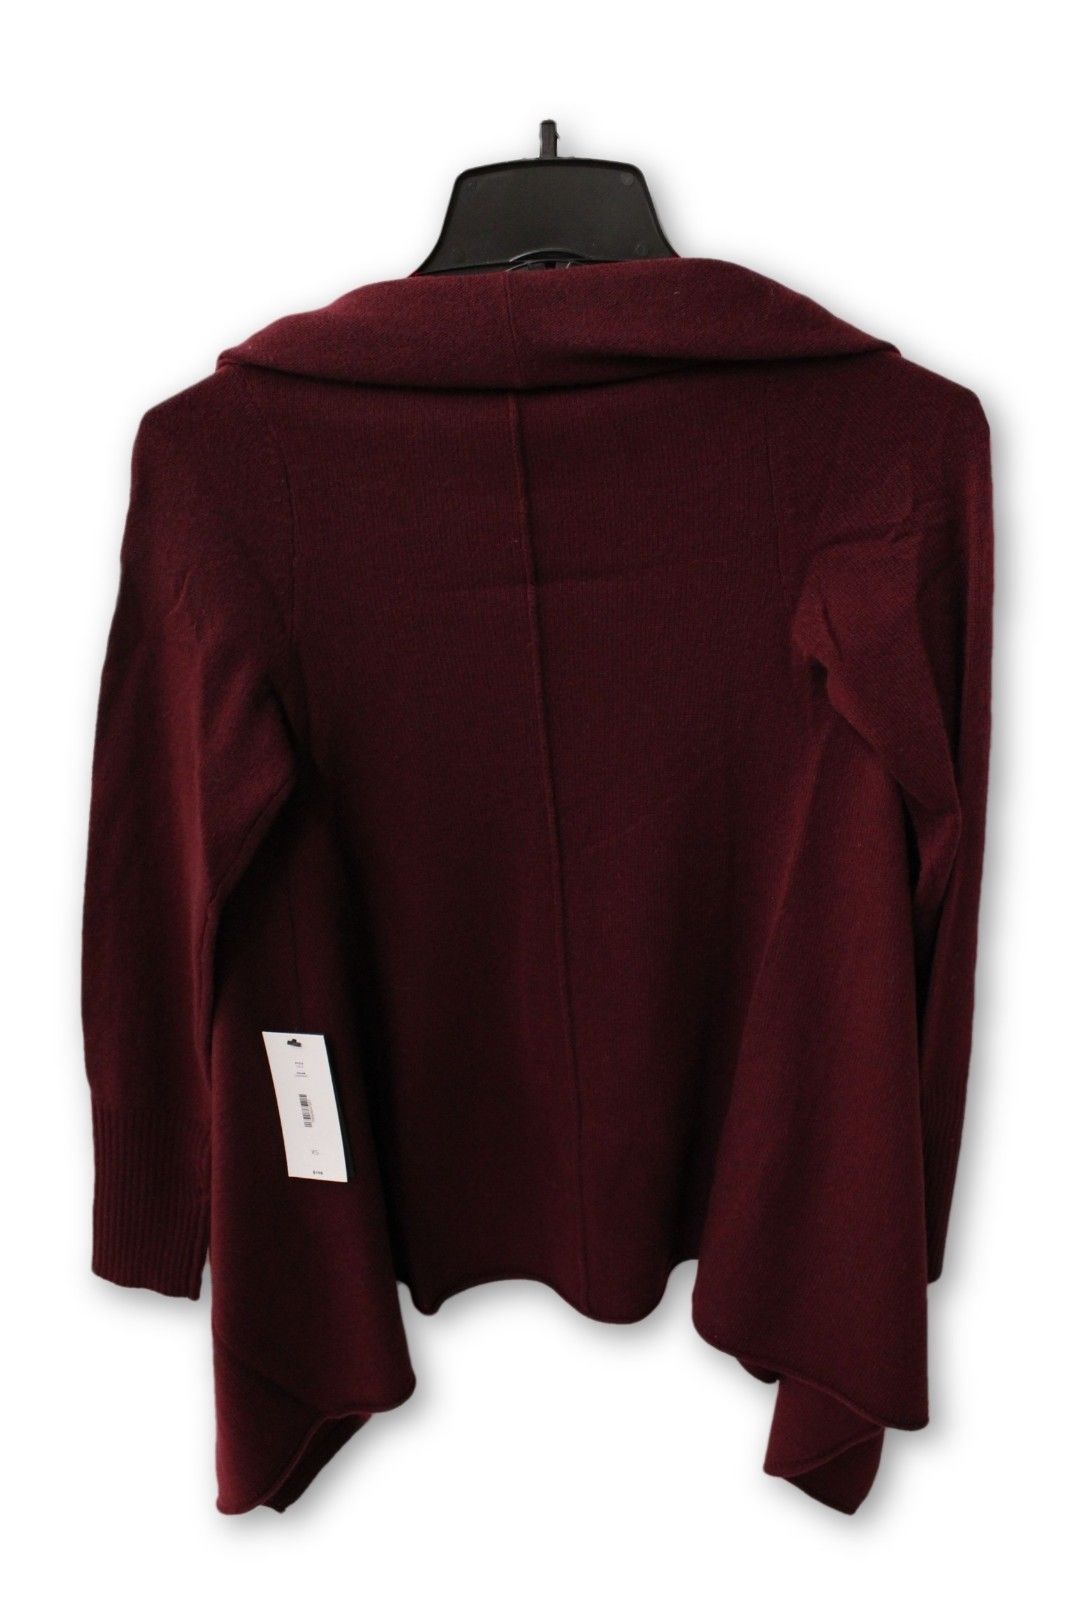 C by Bloomingdale's Women's Cashmere - Maroon Cardigan XS NWT